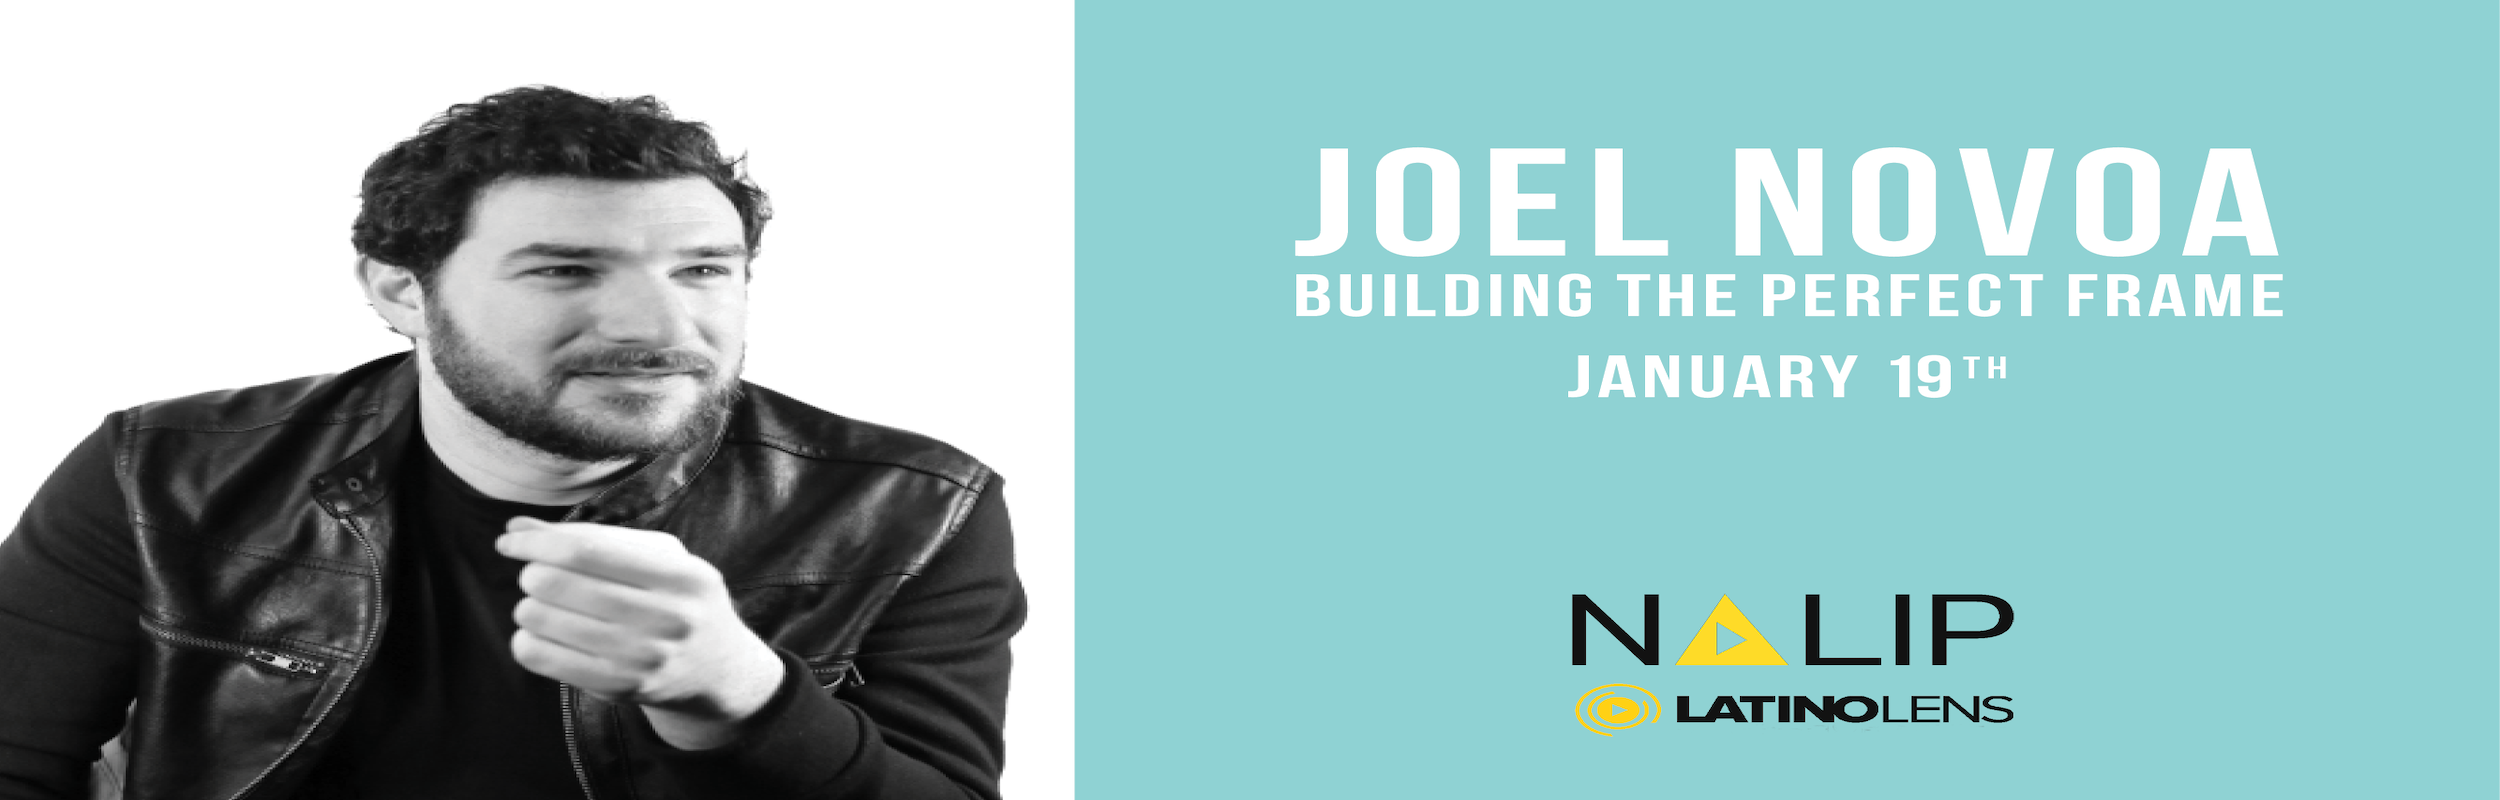 BUILDING THE PERFECT FRAME WITH JOEL NOVOA